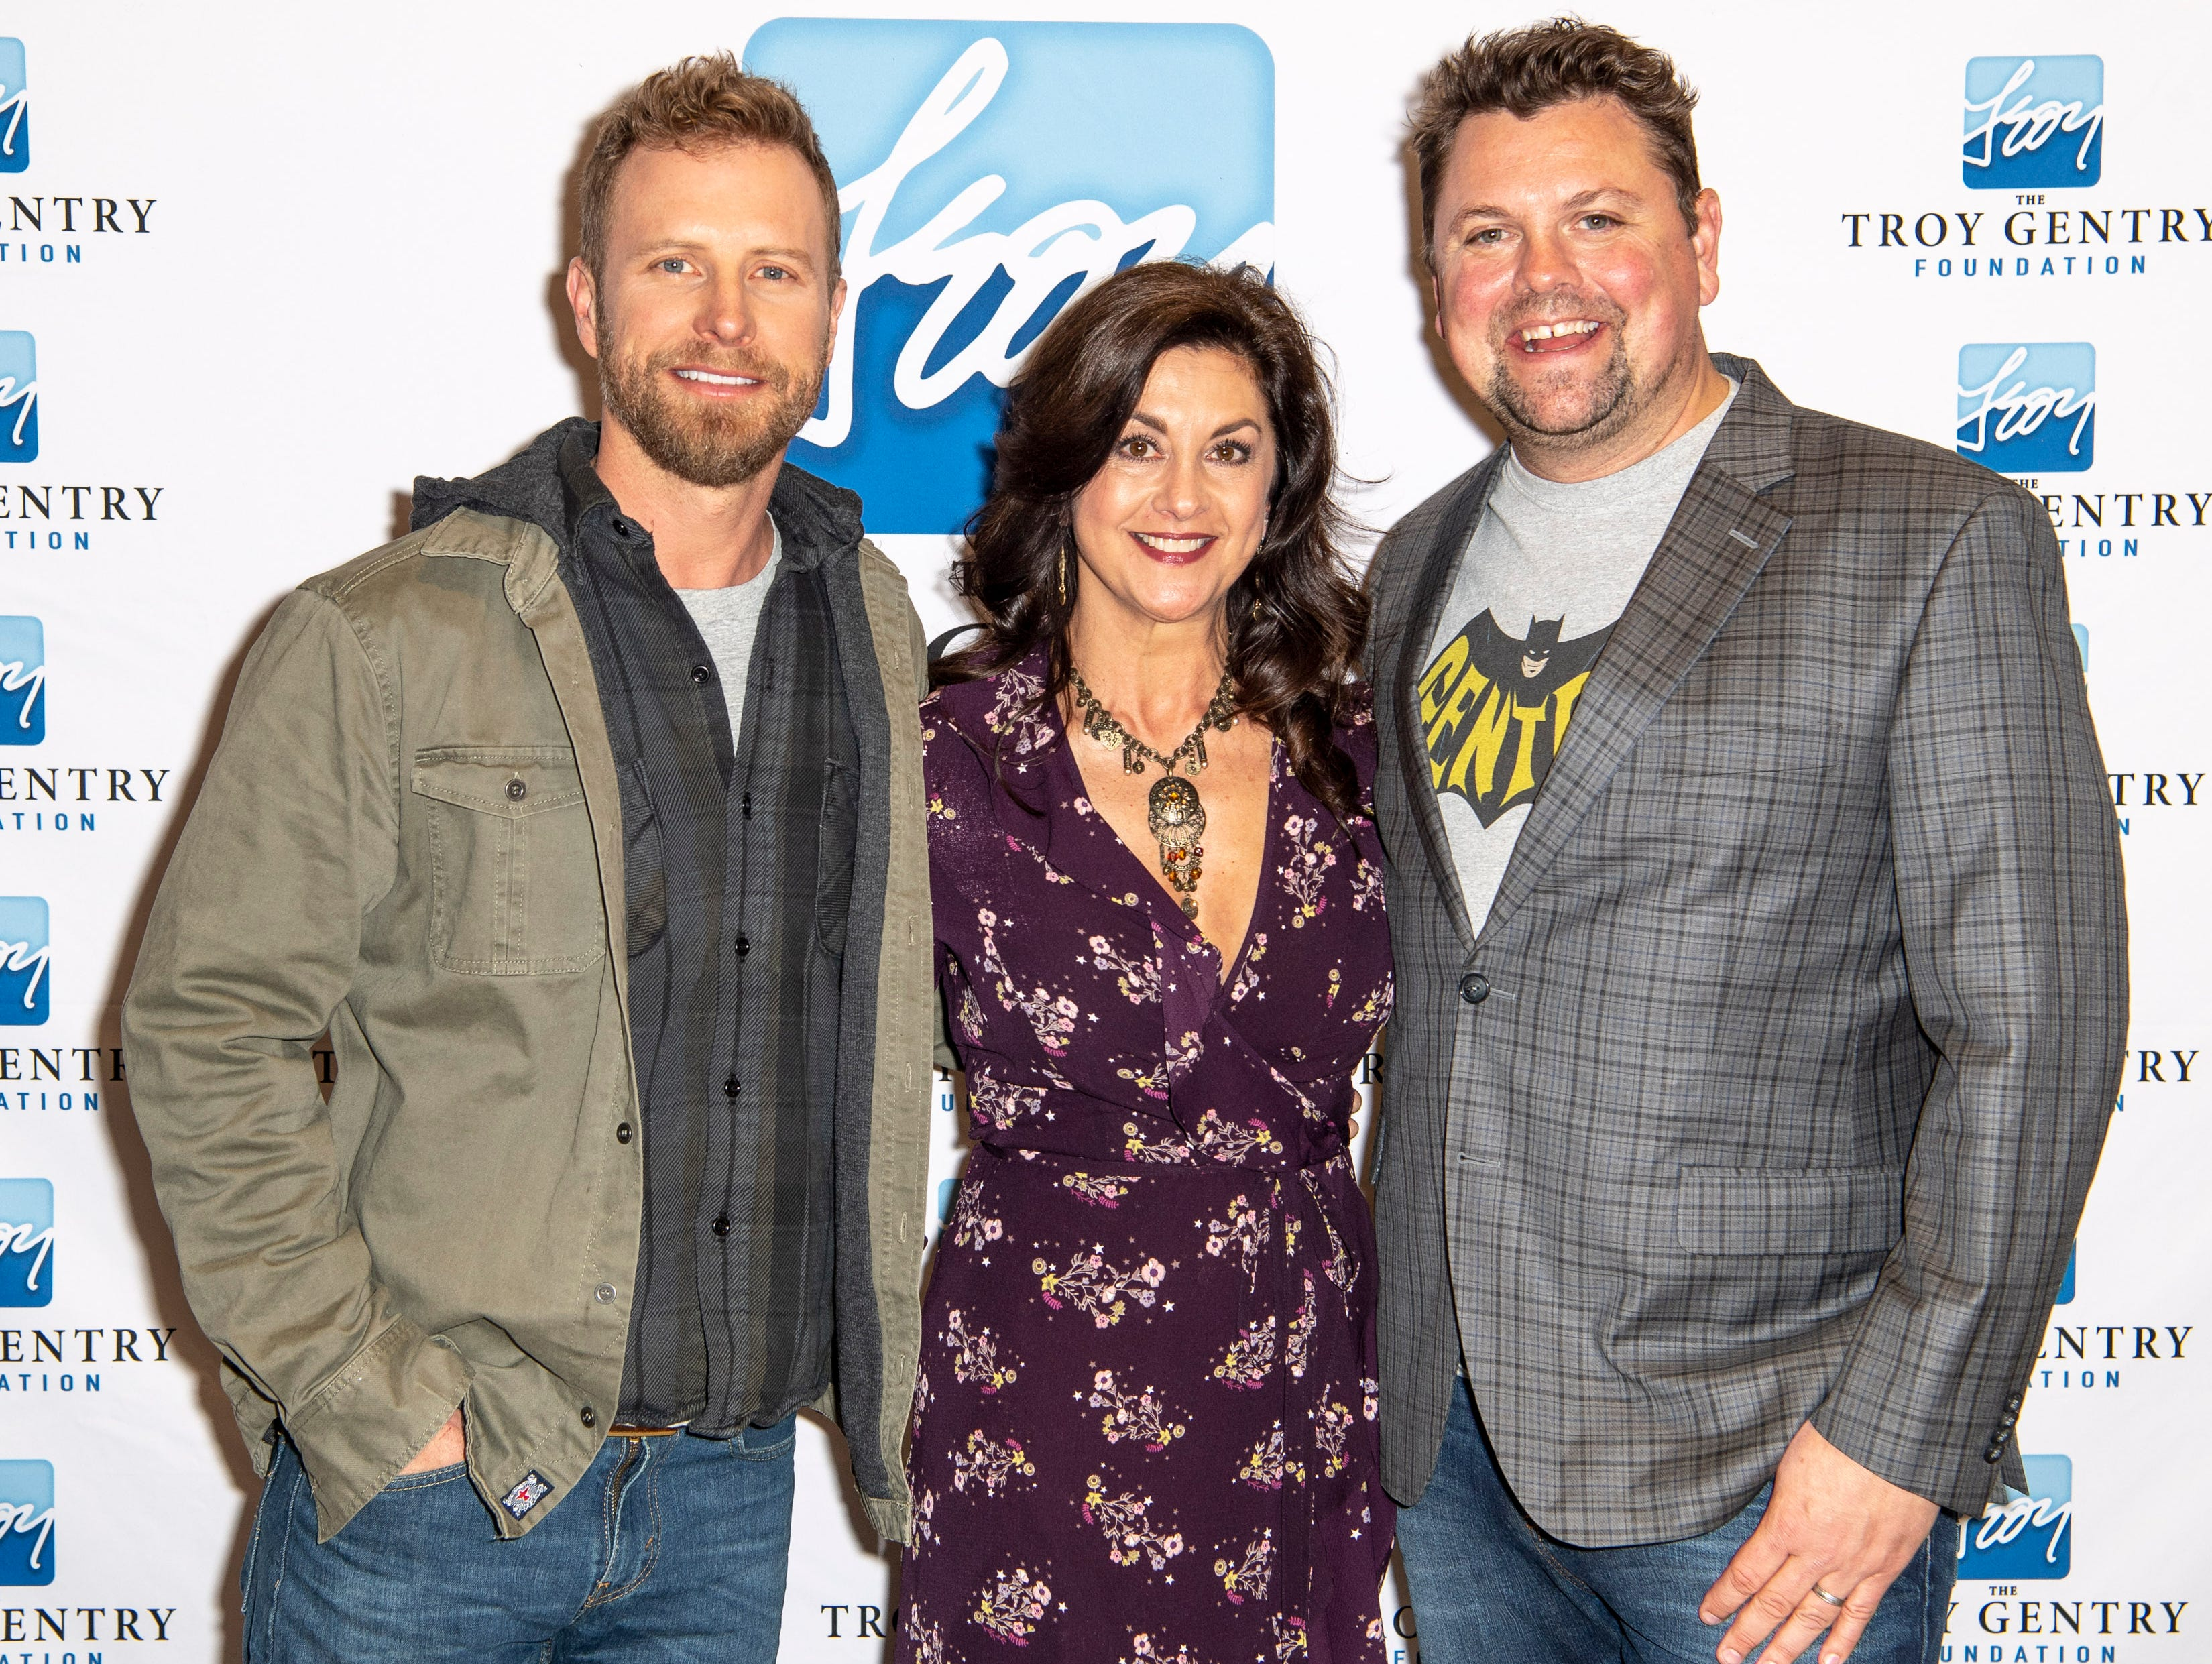 Dierks Bentley, Angie Gentry, and Storme Warren on the red carpet before the C'Ya On The Flipside Benefit Concert at the Grand Ole Opry House in Nashville, Tenn., Wednesday, Jan. 9, 2019.